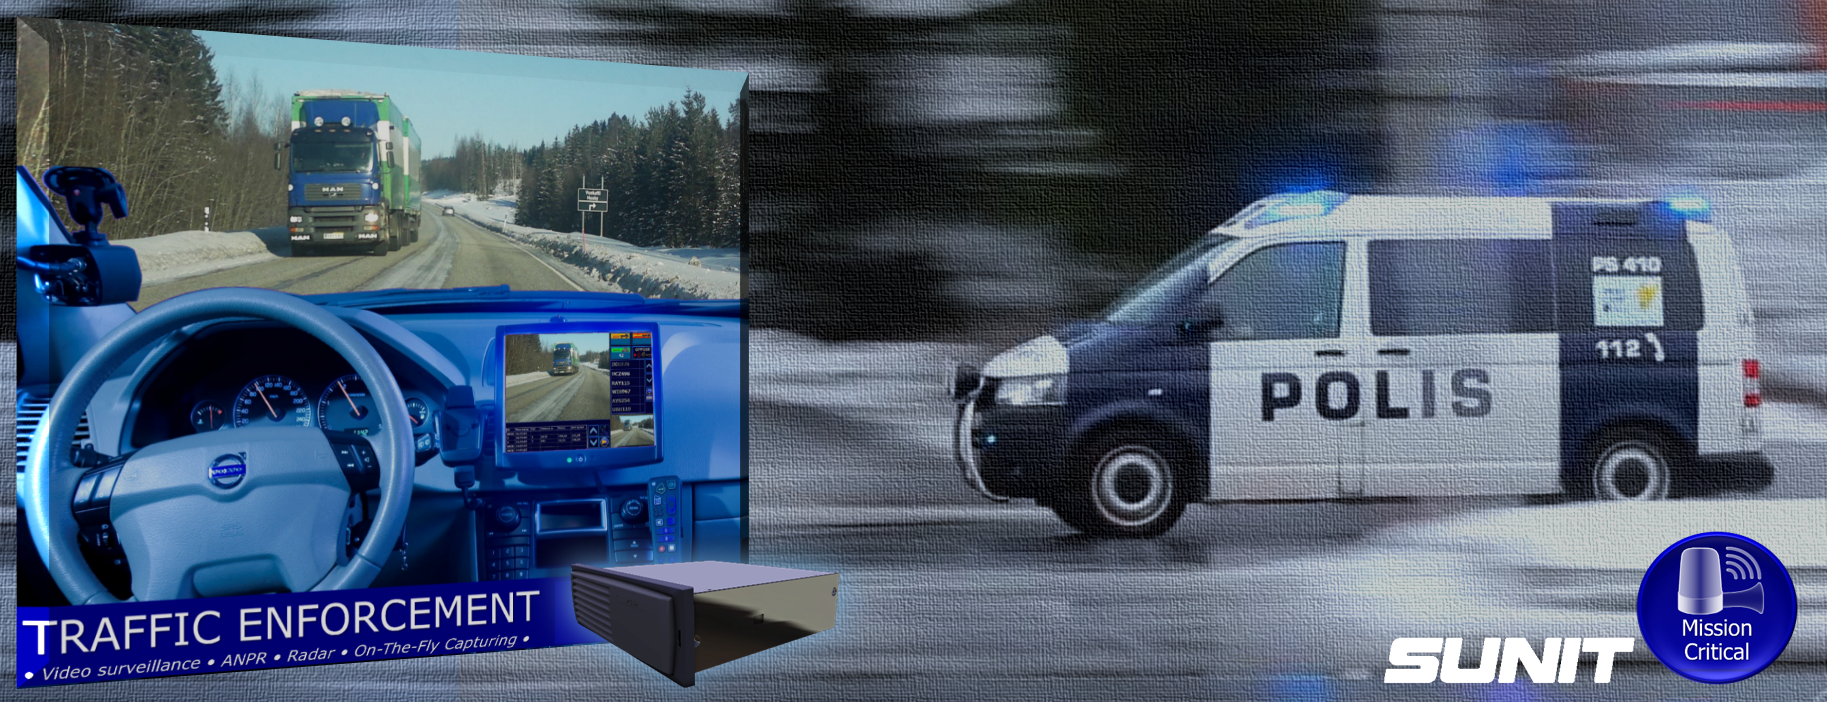 SUNIT Computers for Police Car, Patrol Car, ANPR,  Traffic Surveillance, Mission Critical